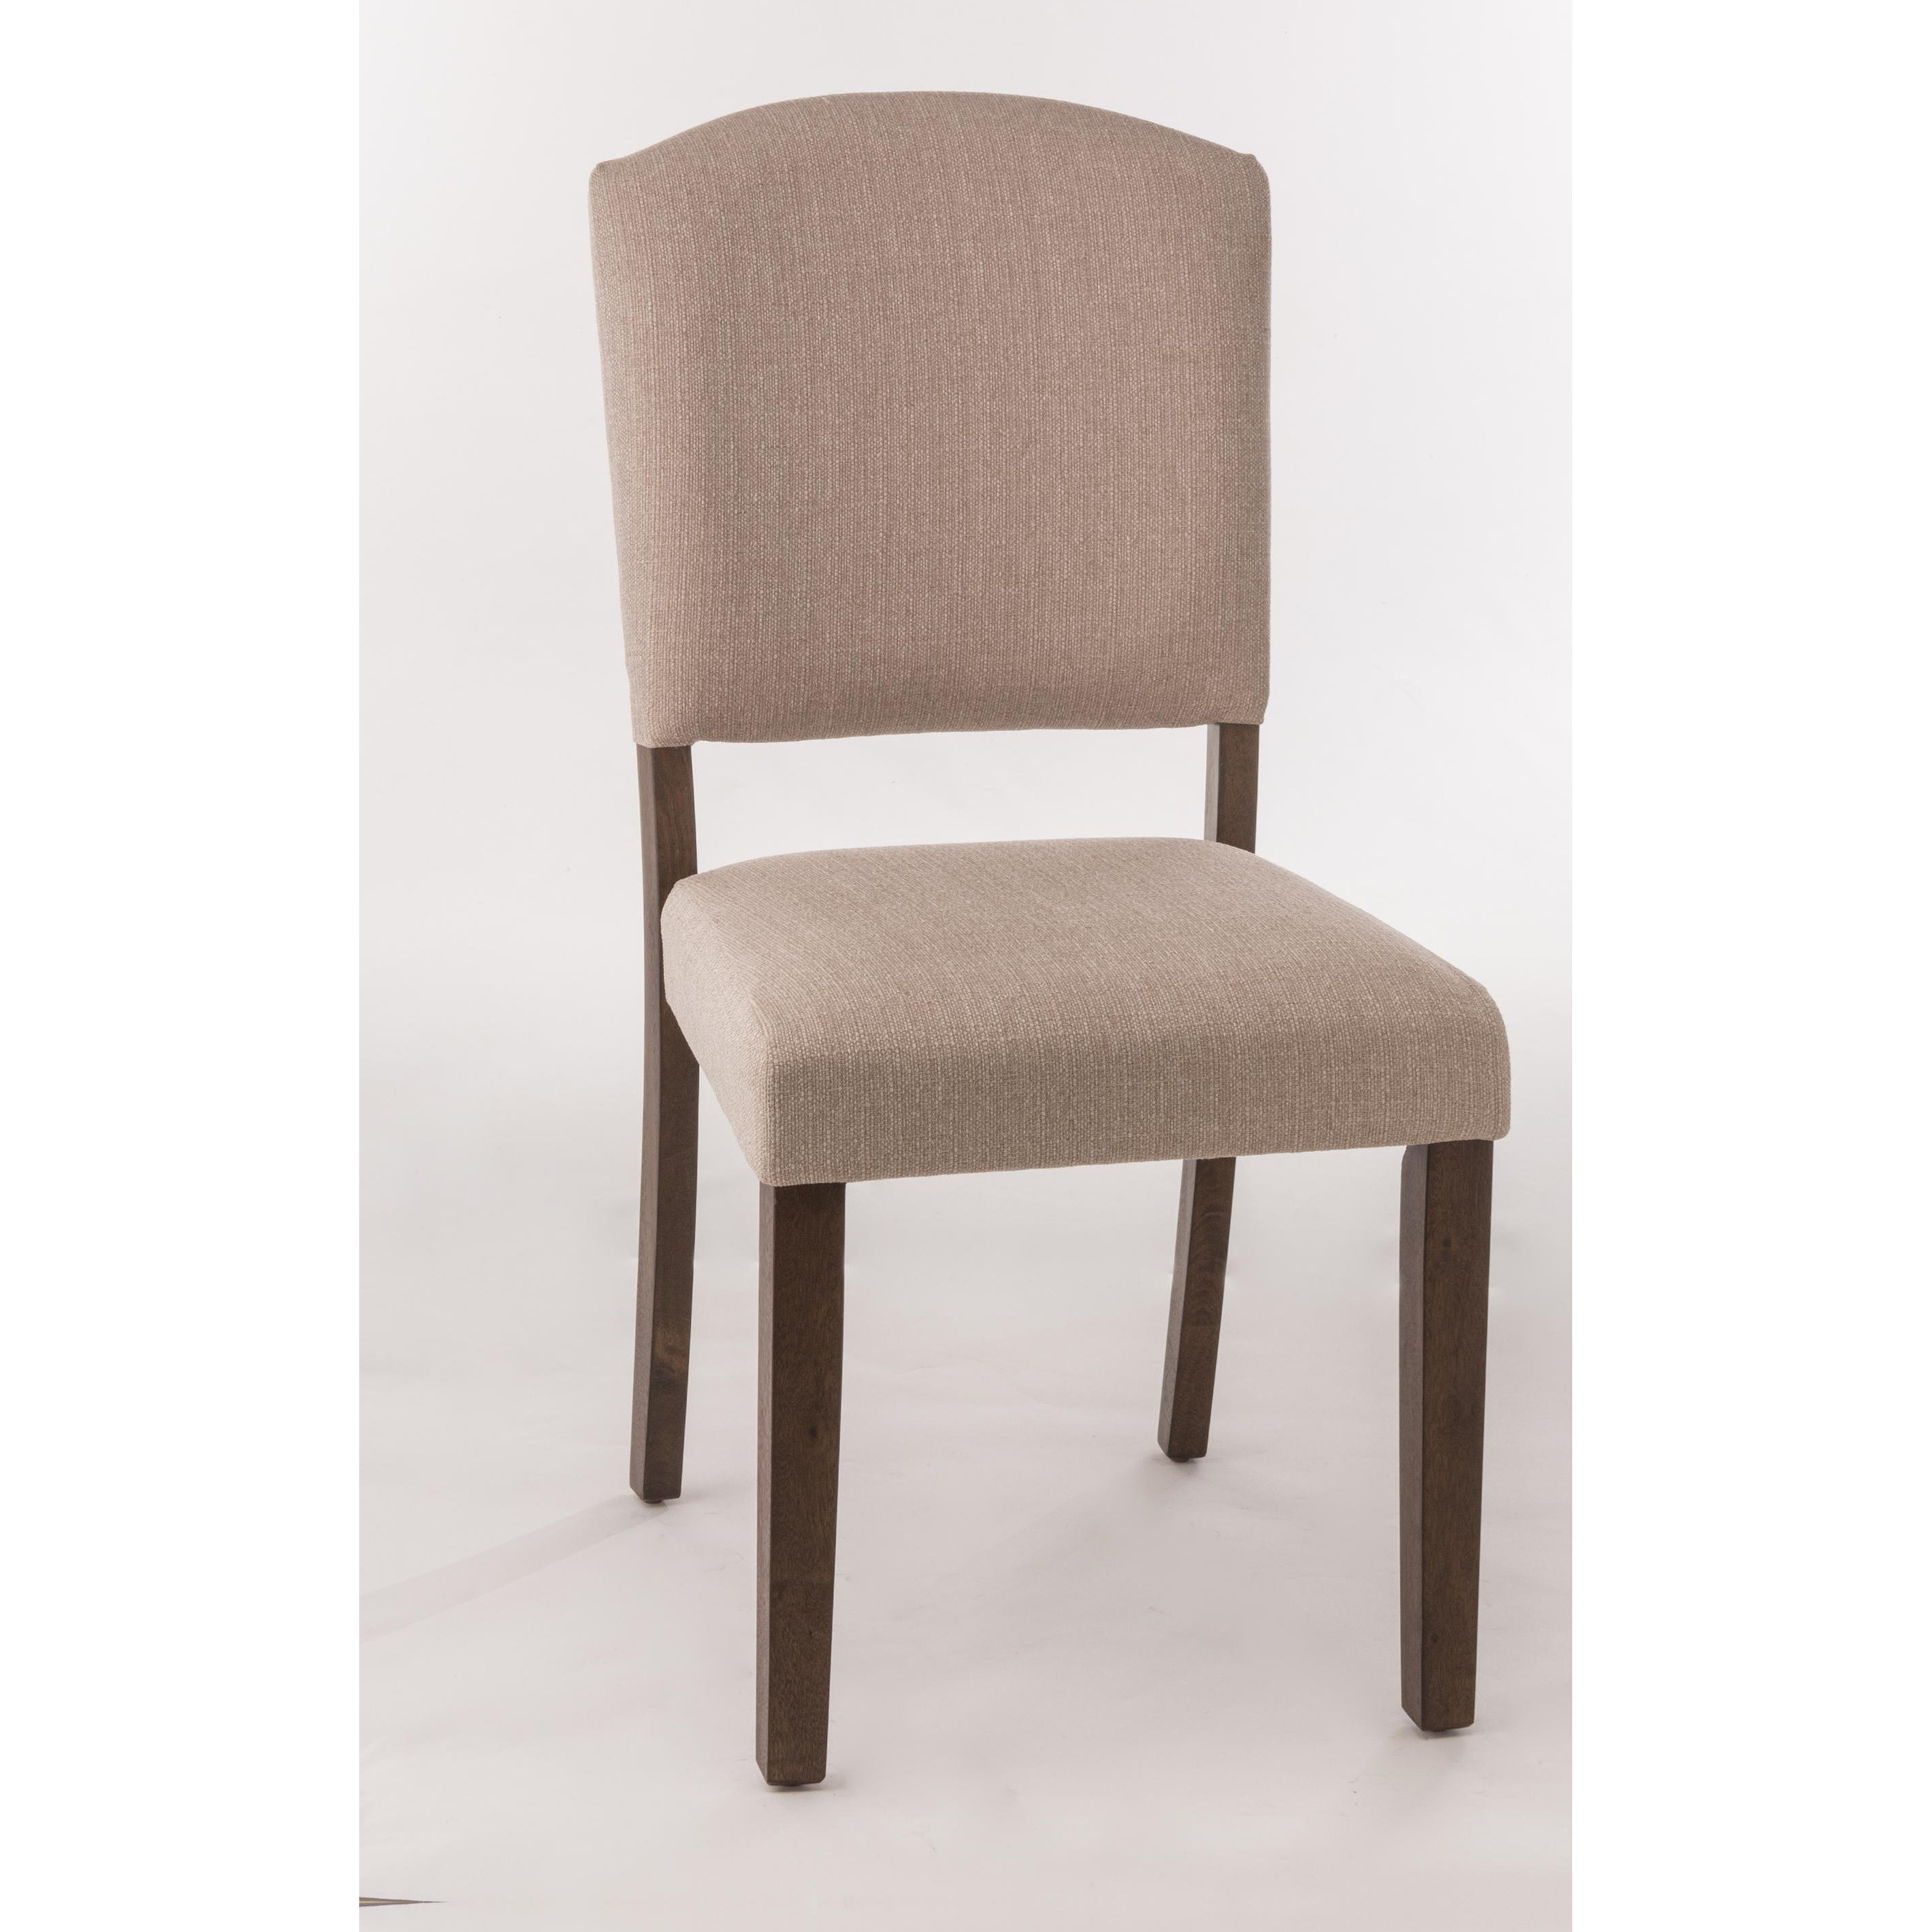 Hillsdale emerson parson dining chair with upholstered for Upholstered parson dining chairs